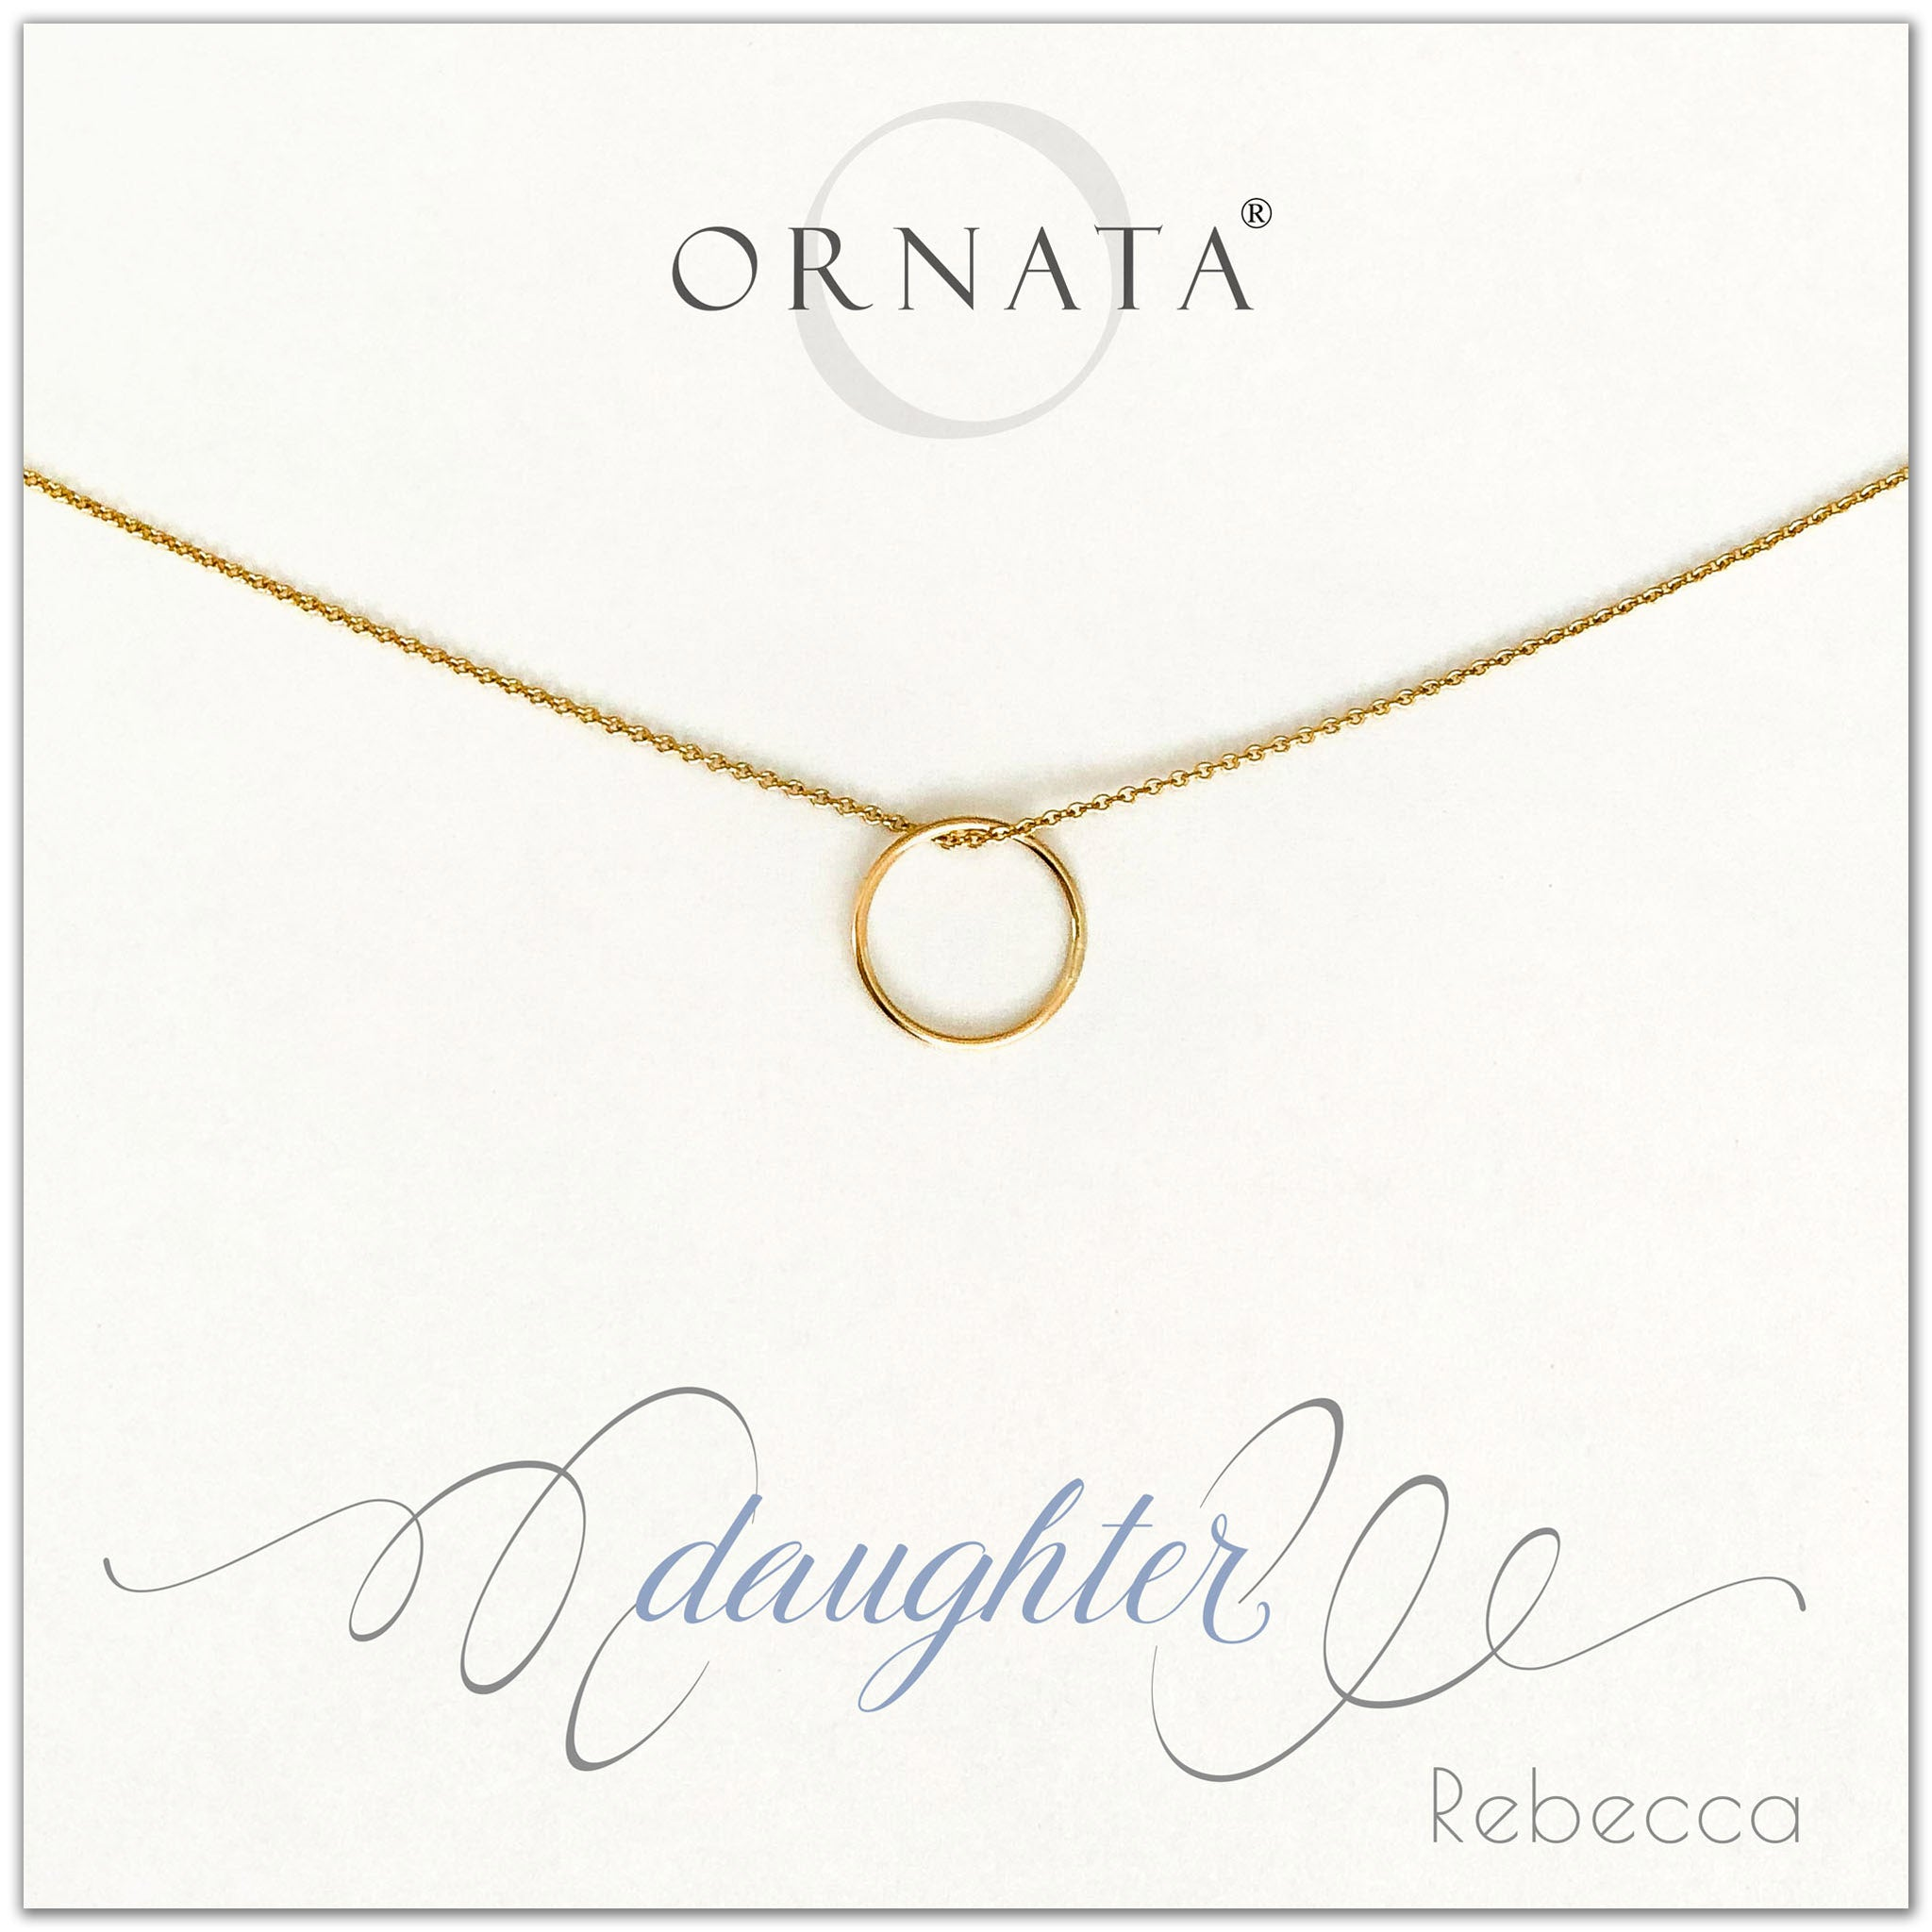 Daughter necklace - personalized gold necklaces. Our 14 karat gold filled custom jewelry is a perfect gift for daughters from mothers or fathers. Also a good gift for Mother's Day. Part of our Generations Jewelry collection.